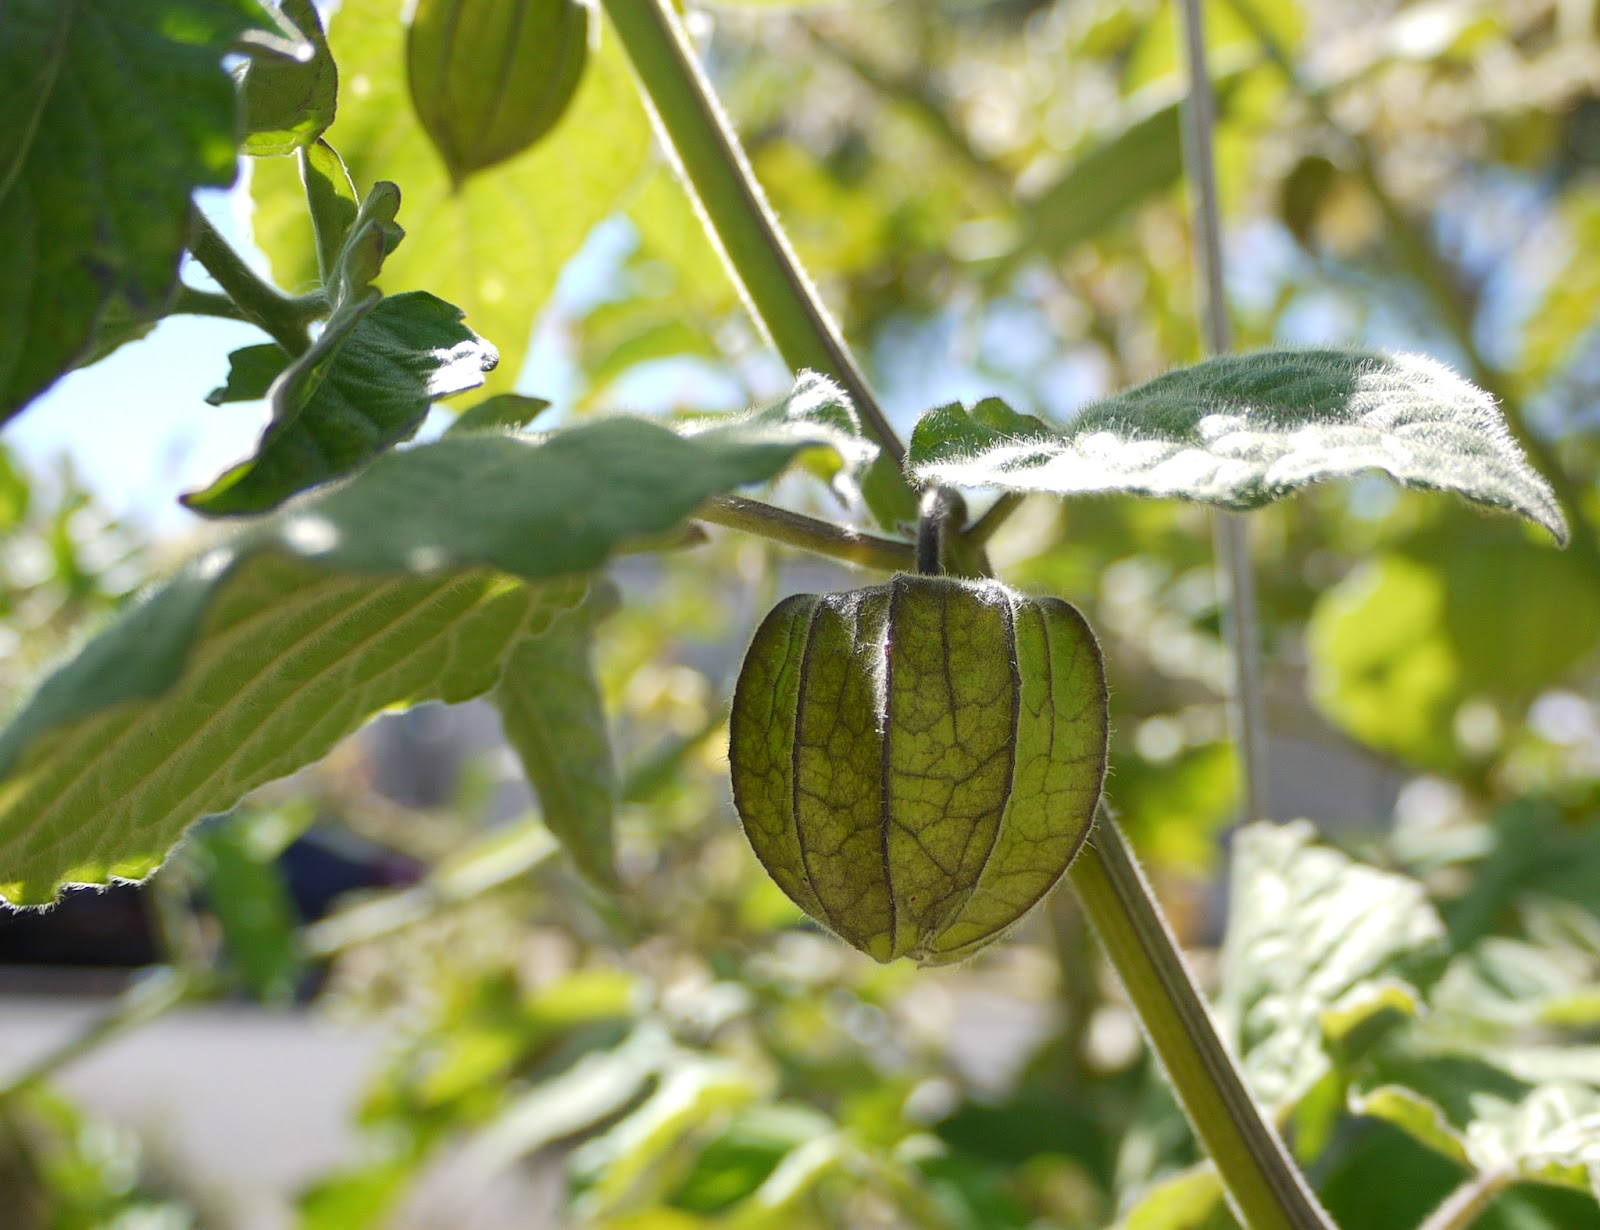 Green cape gooseberry husk